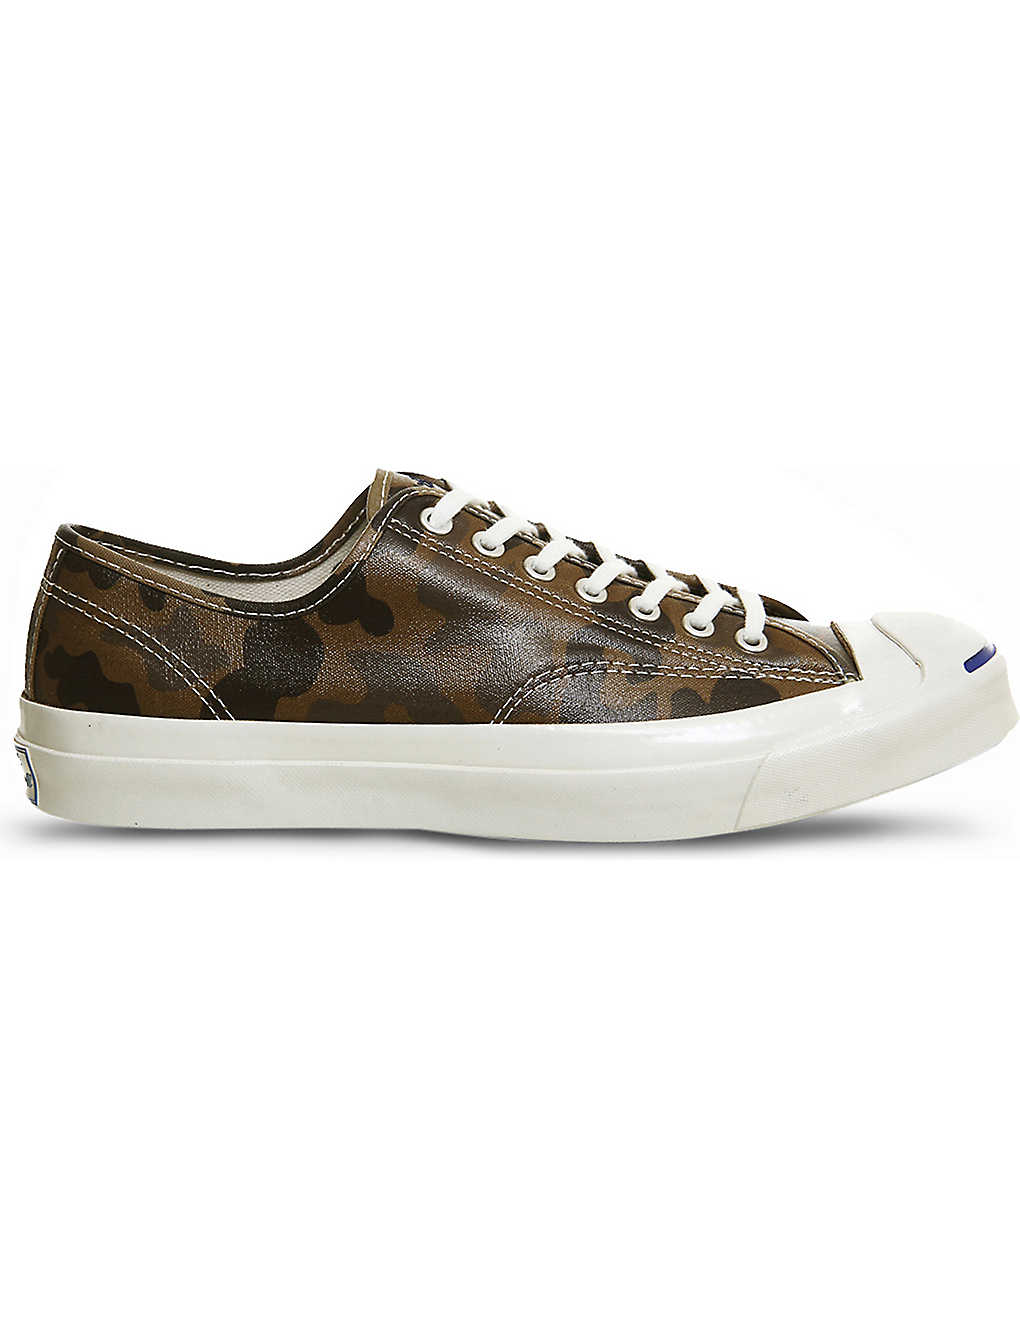 61c07d3103a4 CONVERSE - Jack Purcell leather trainers